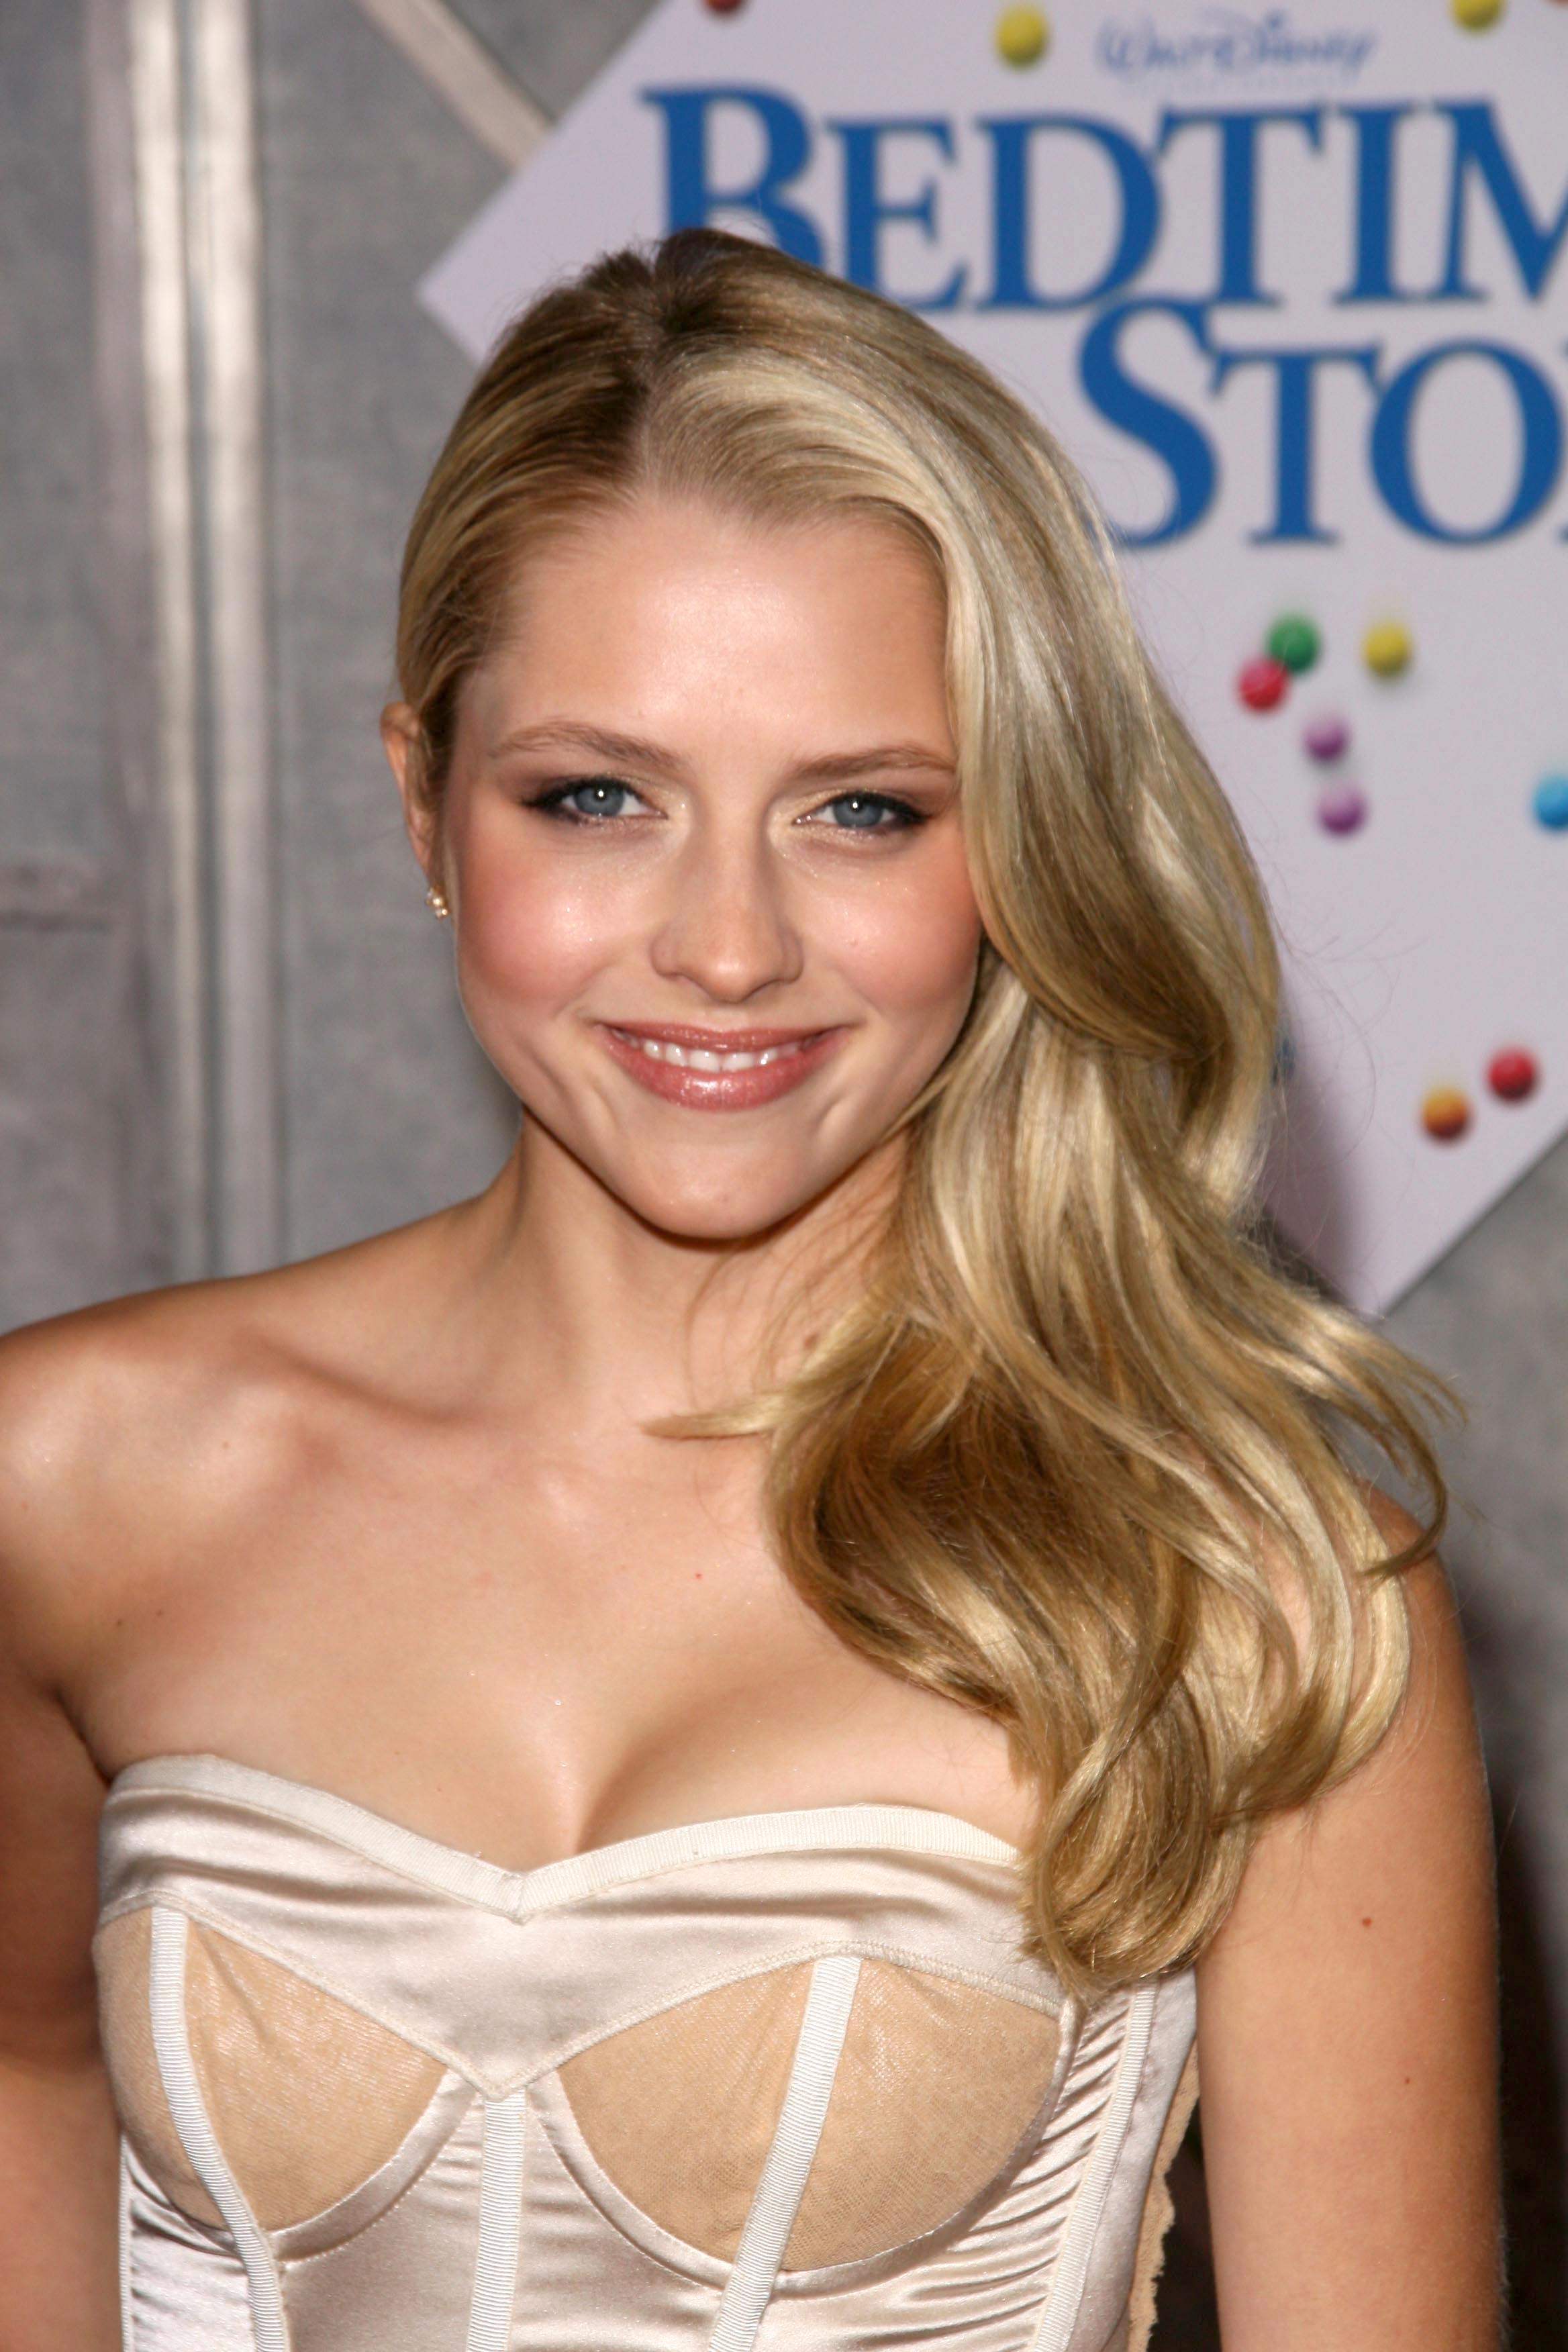 teresa palmer gifteresa palmer gif, teresa palmer instagram, teresa palmer hacksaw ridge, teresa palmer movies, teresa palmer фильмы, teresa palmer фото, teresa palmer films, teresa palmer 2017, teresa palmer valentino, teresa palmer wikipedia, teresa palmer gif tumblr, teresa palmer and mark webber, teresa palmer wiki, teresa palmer i am number four, teresa palmer png, teresa palmer site, teresa palmer artistry 2017, teresa palmer fashion spot, teresa palmer photo hot, teresa palmer and husband